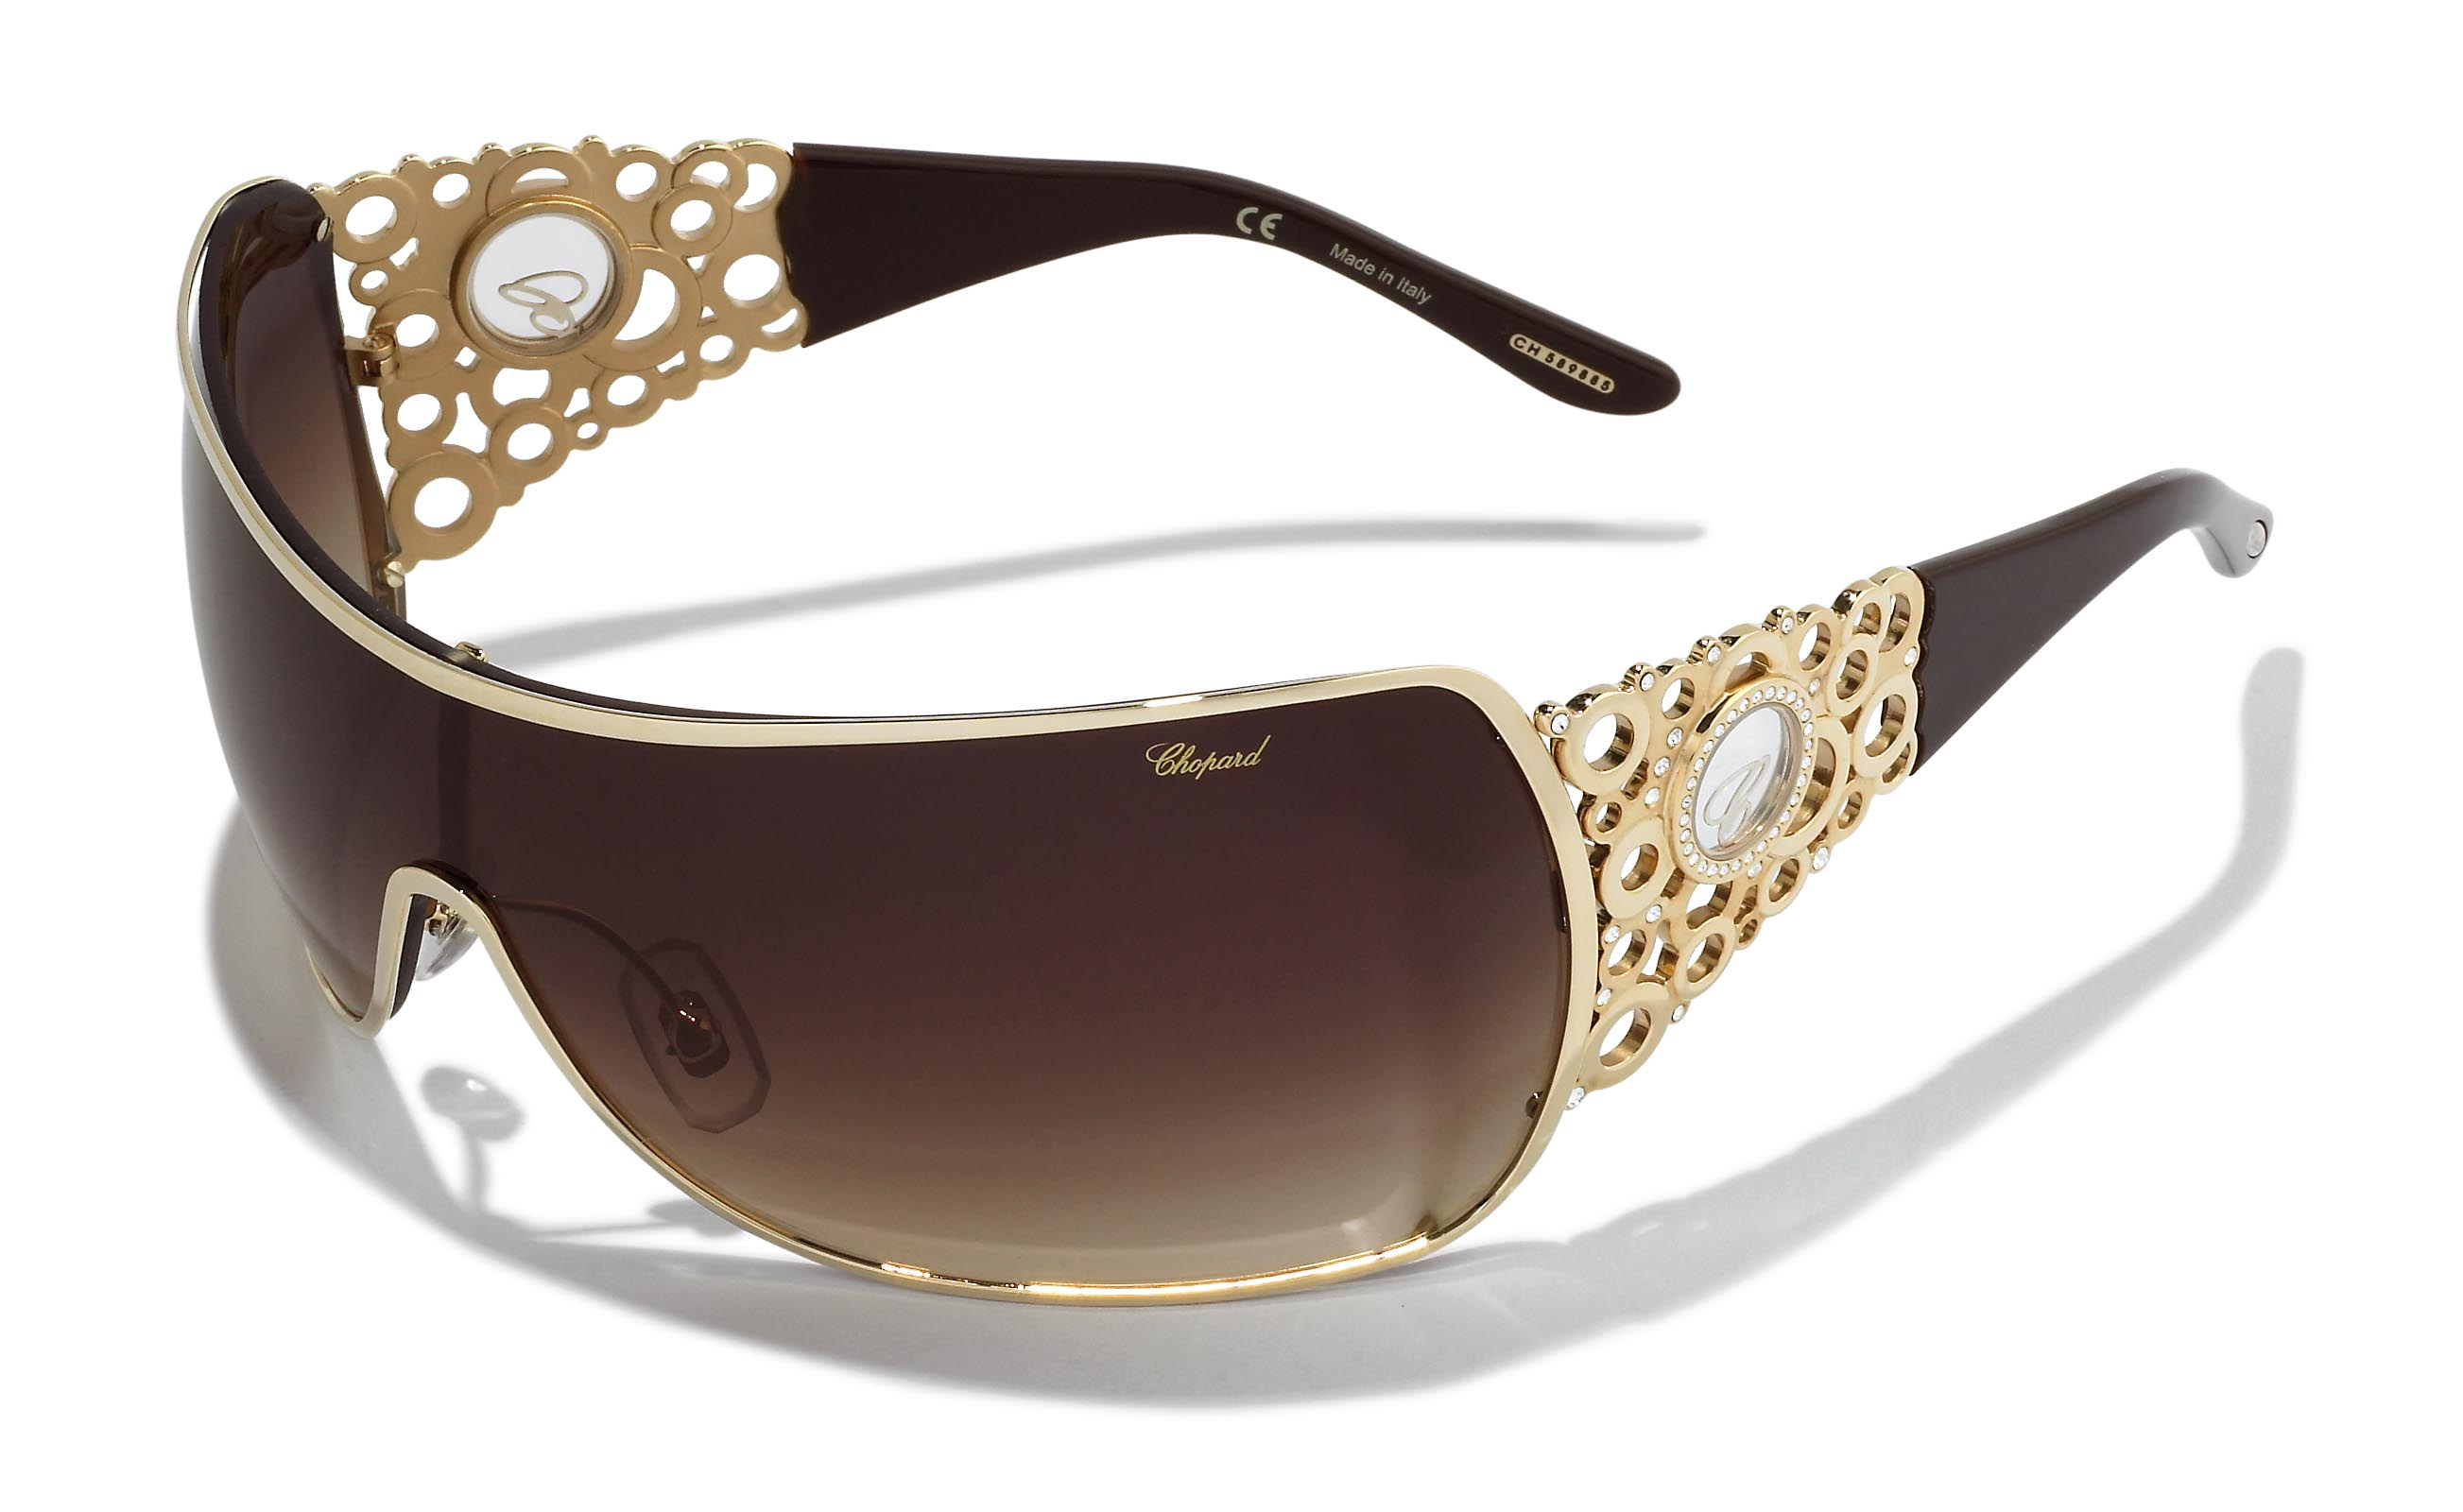 Ladies Chopard sunglasses